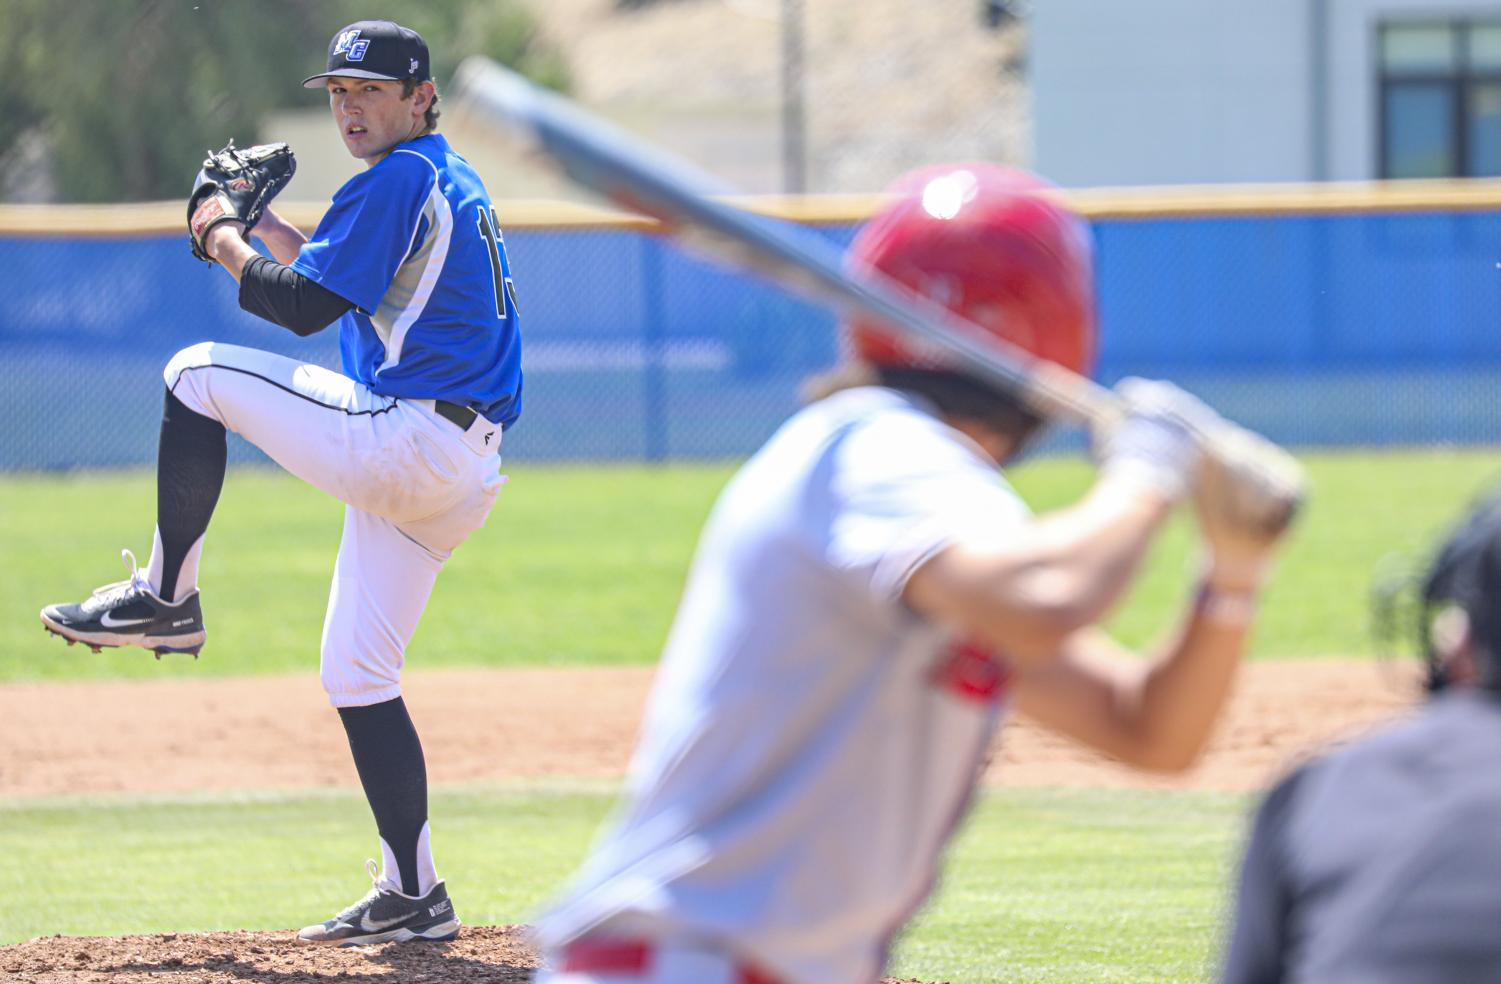 Moorpark pitcher Lance Kinross winds up a pitch to a batter during the home game against the Bakersfield College Renegades on April 10, 2021 at Moorpark College.